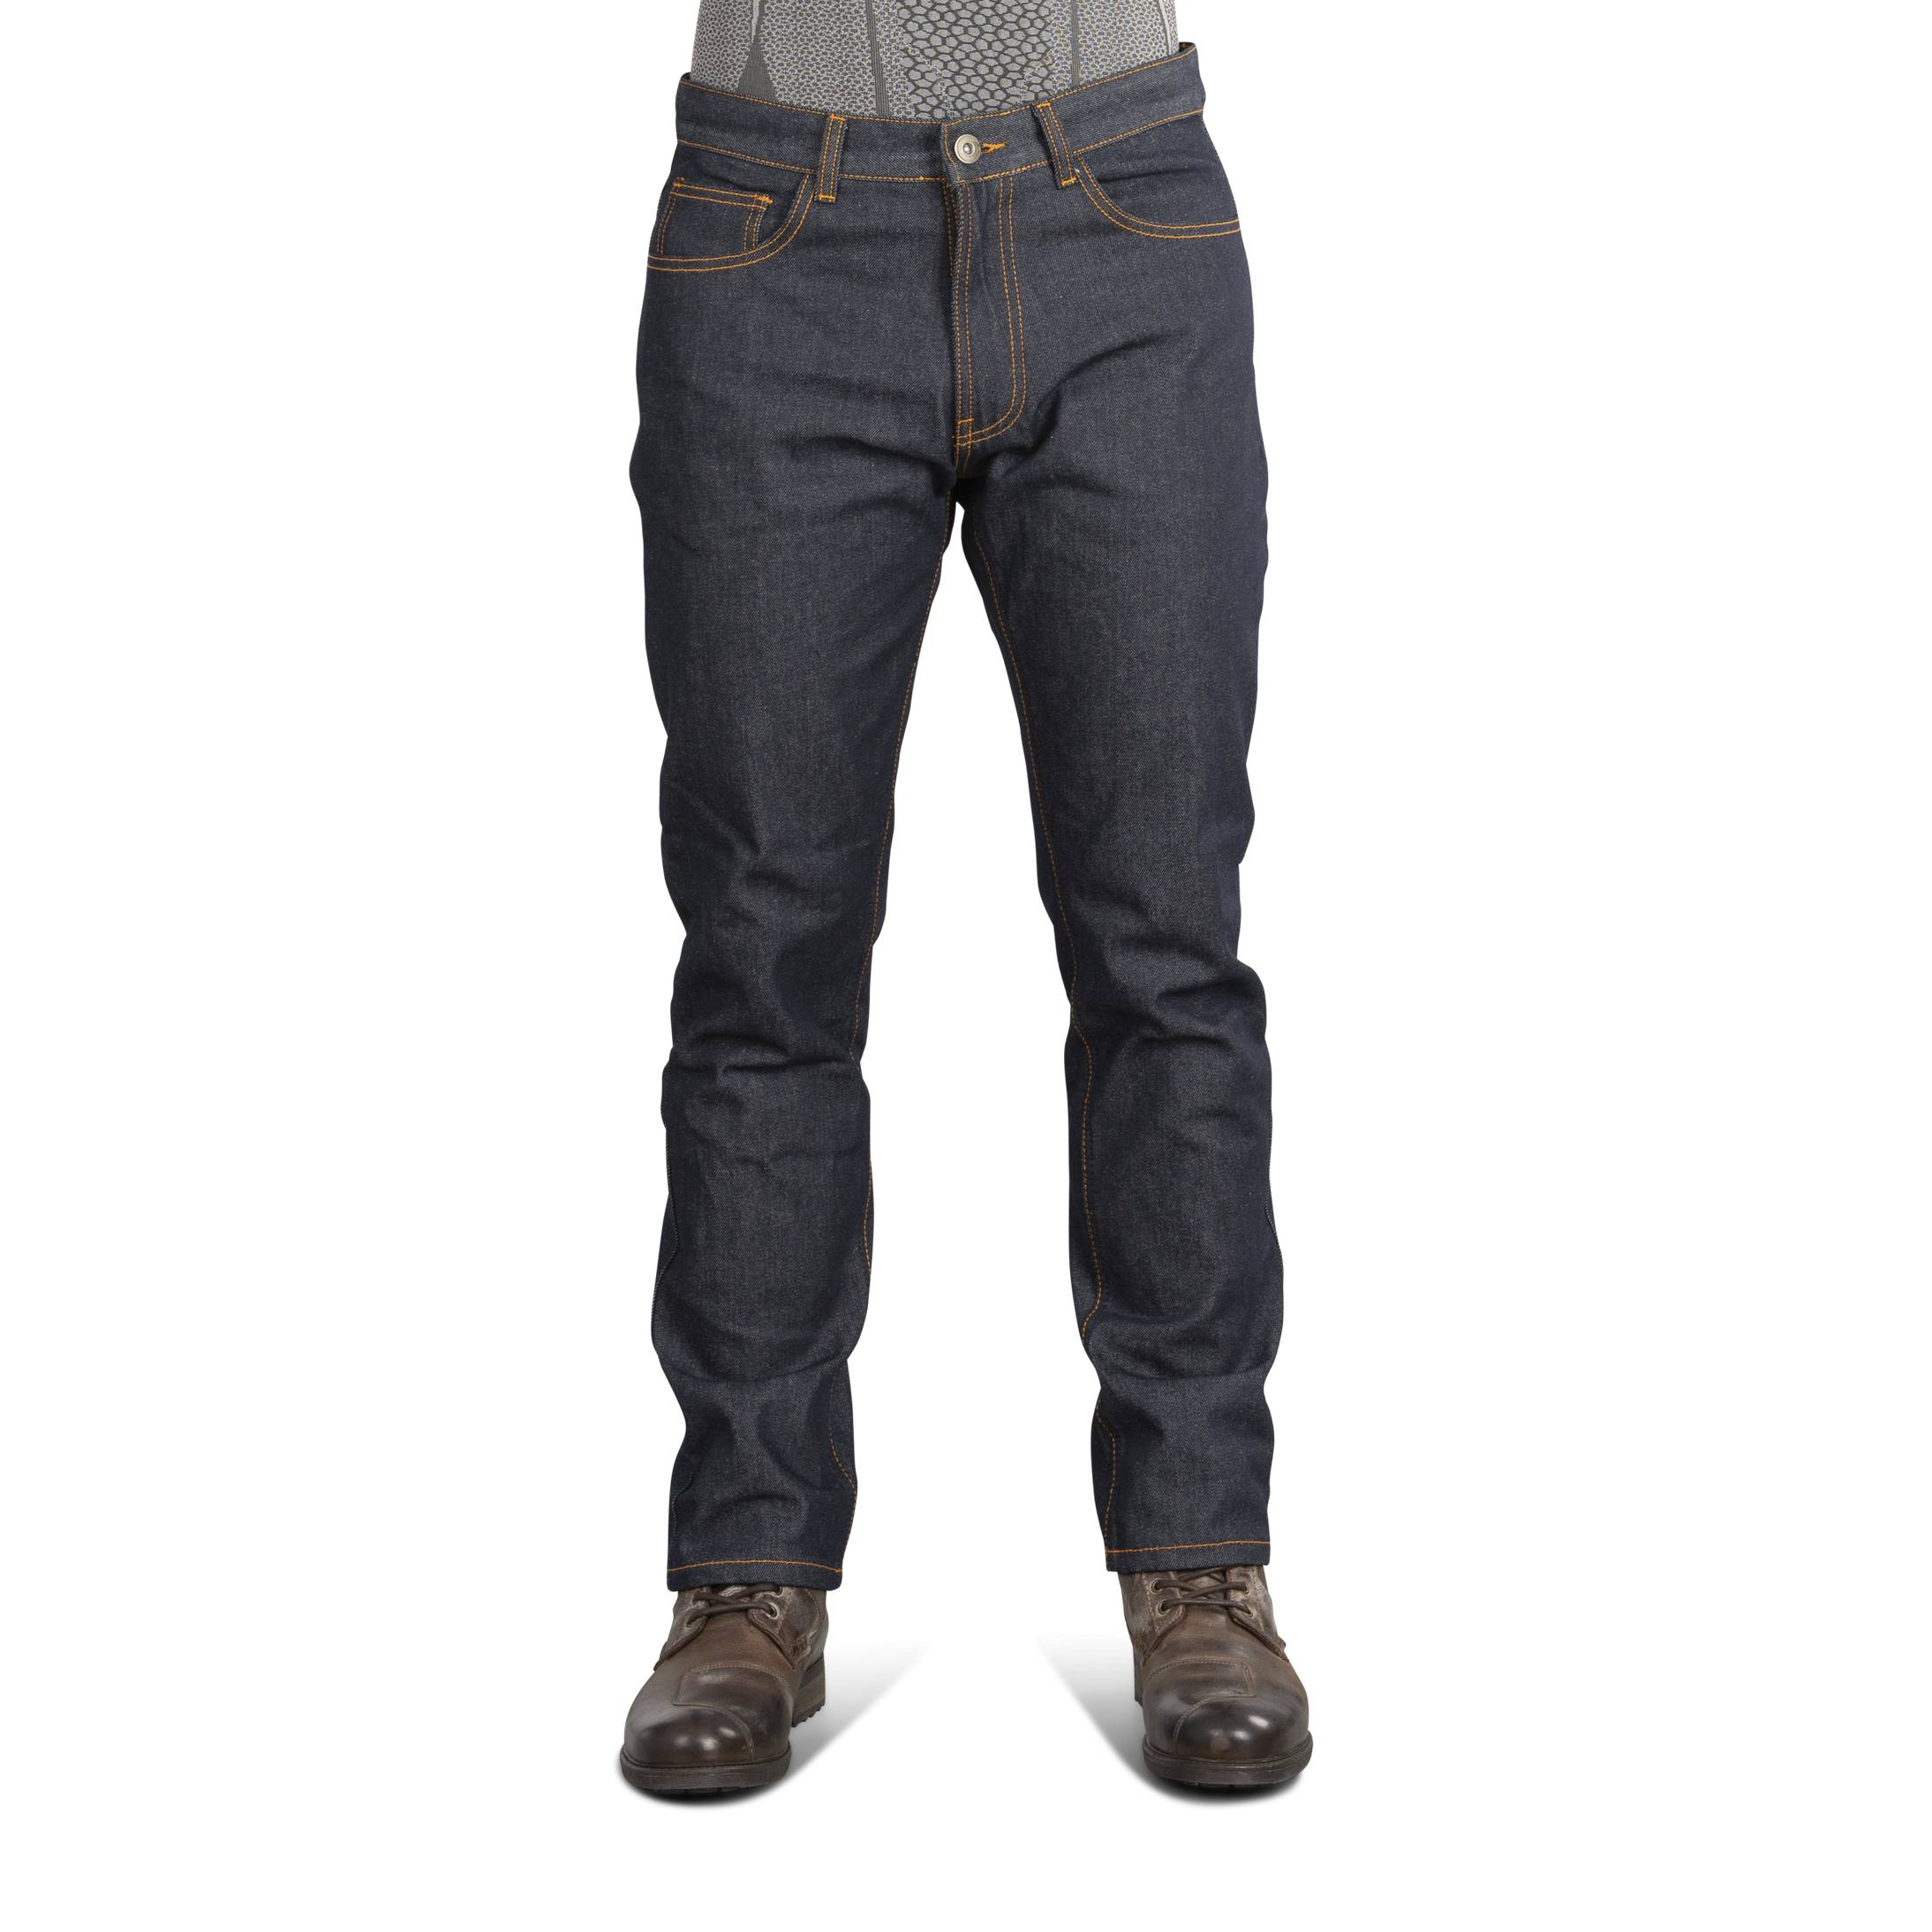 Course Jean Moto Course Heavy Duty Anti-Fit Raw Denim W42 L34